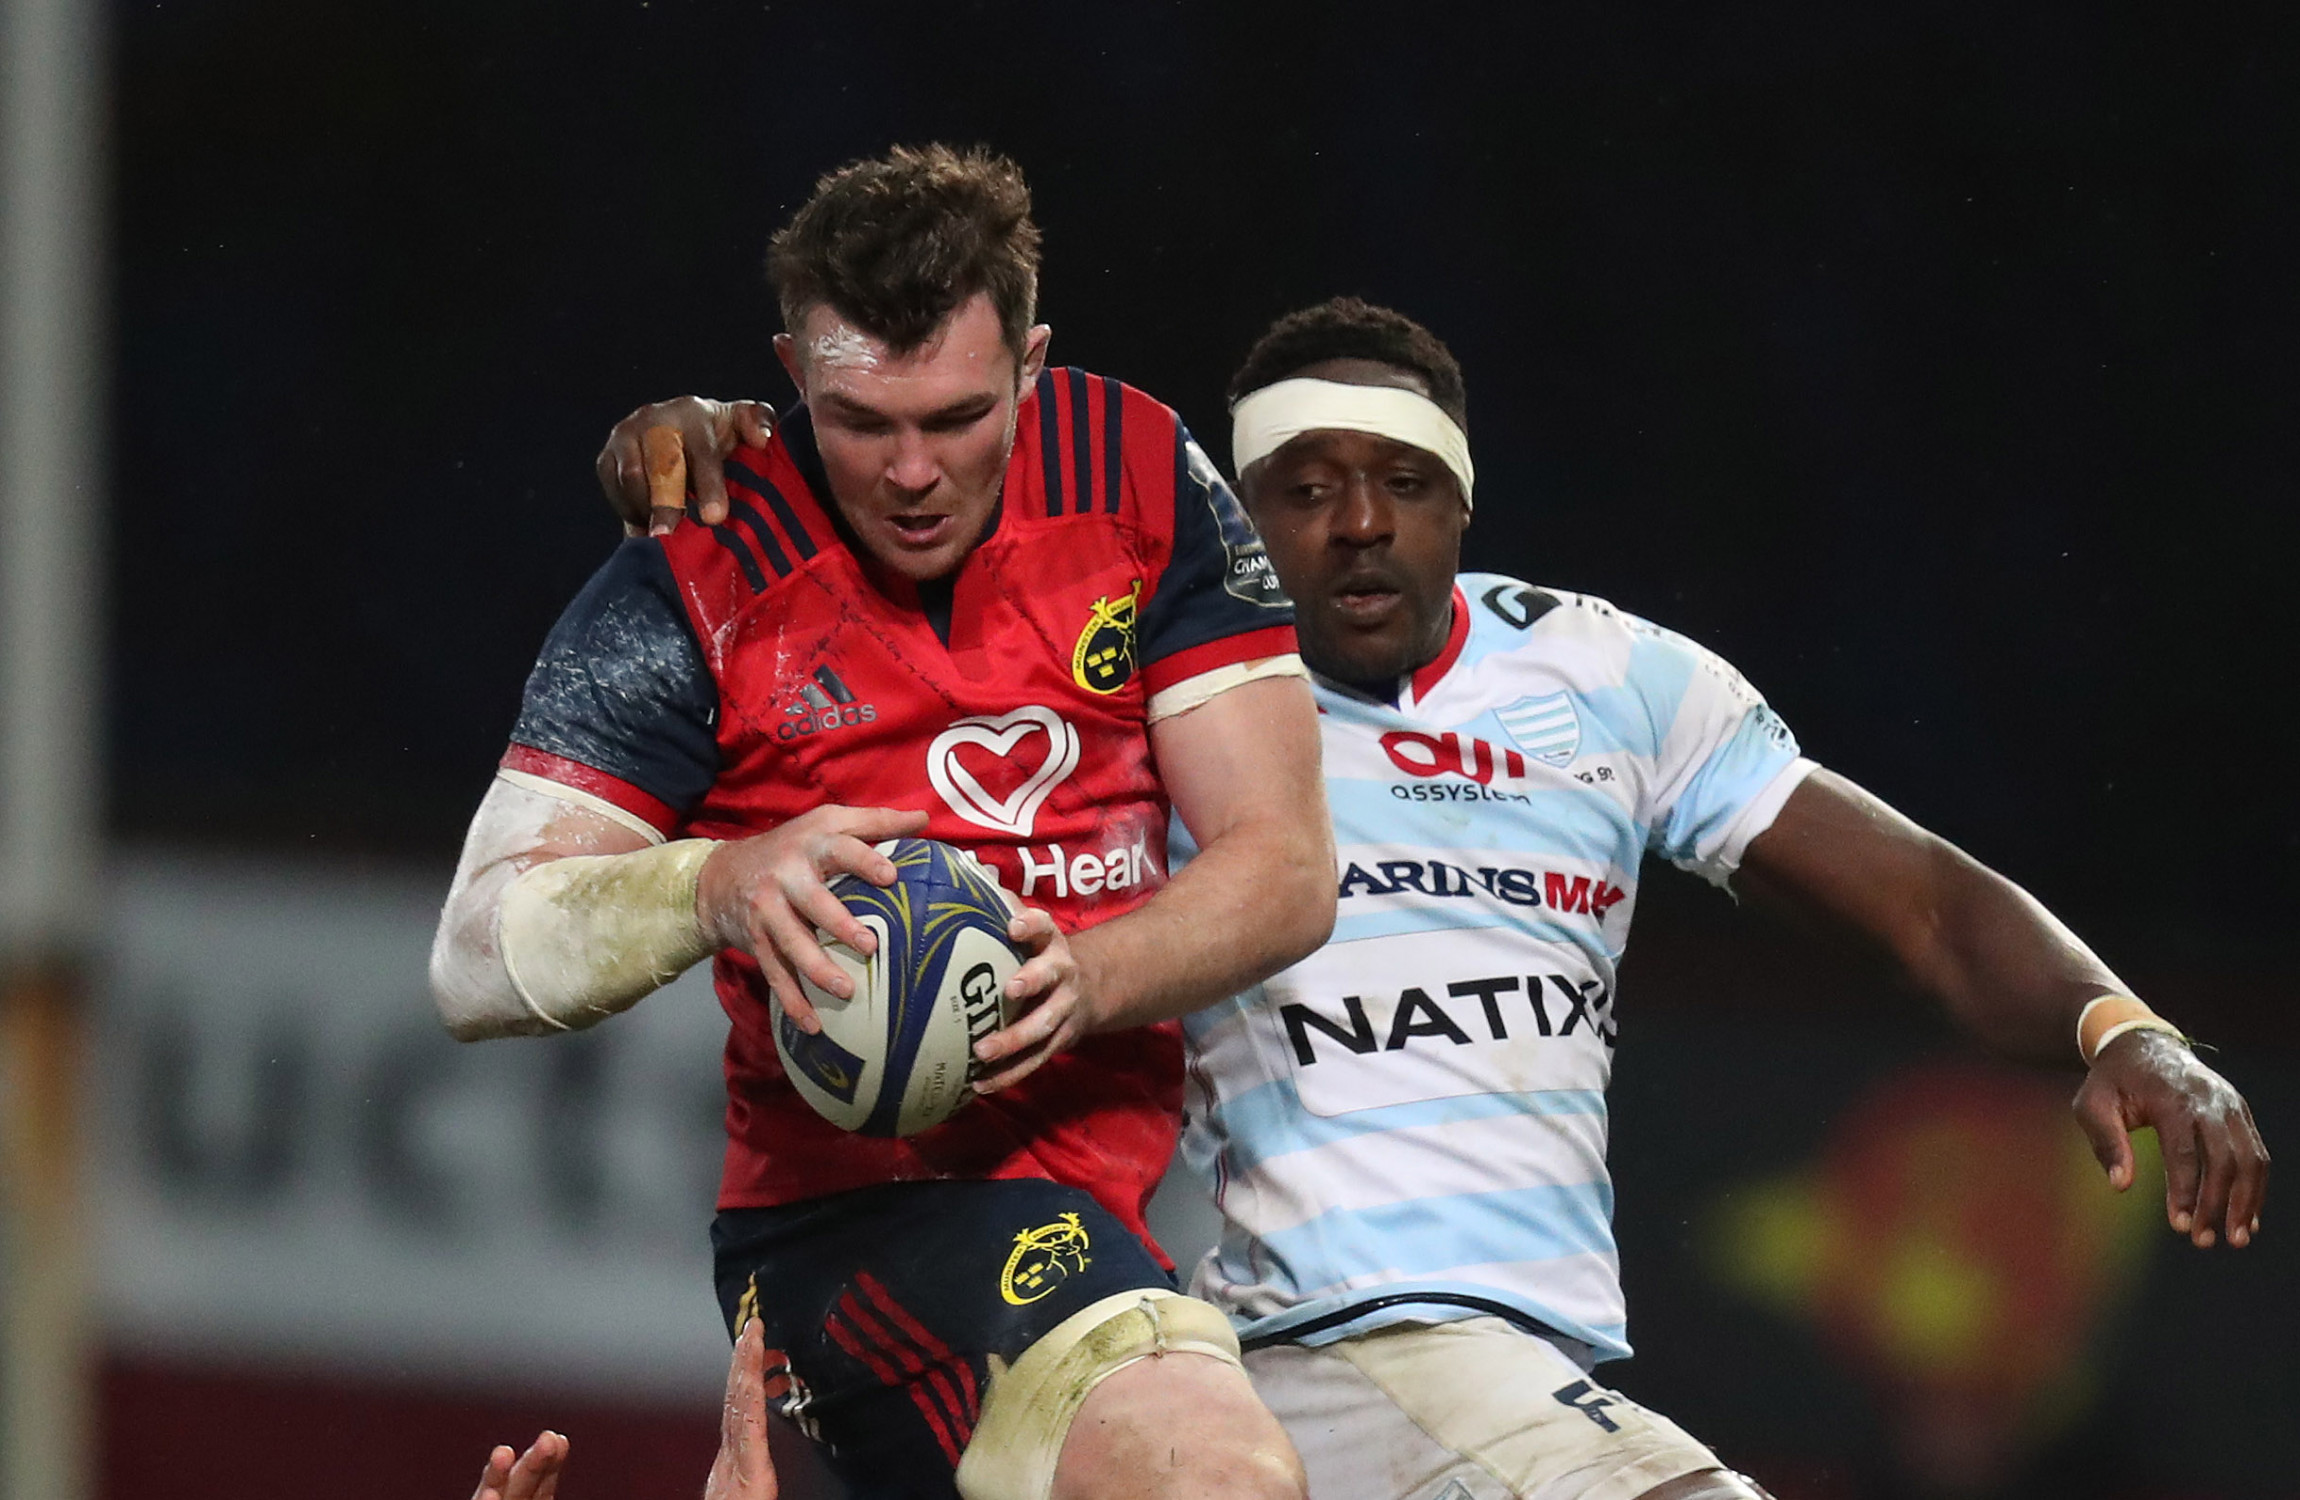 Racing 92 edge out Munster in Champions Cup thriller